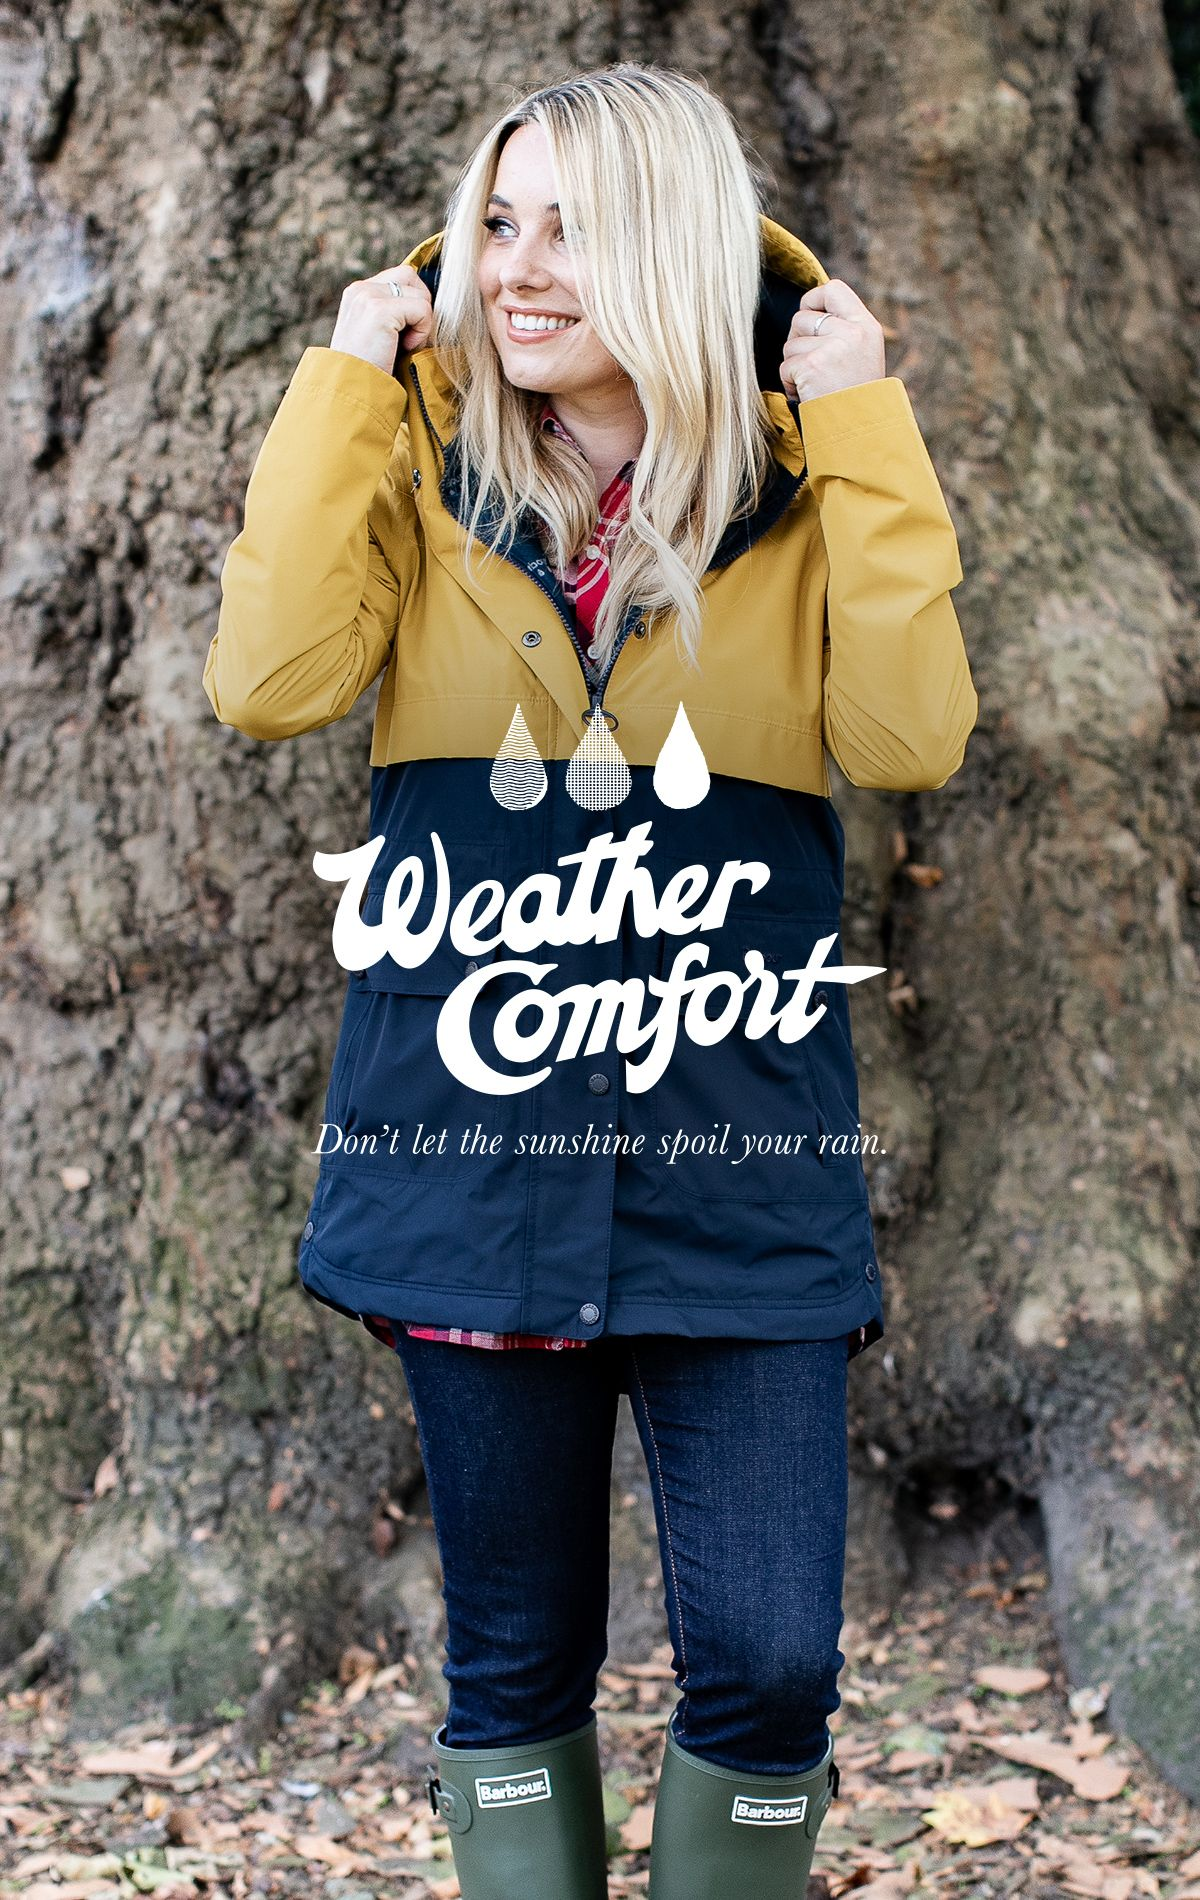 To celebrate the launch of the Weather Comfort Collection